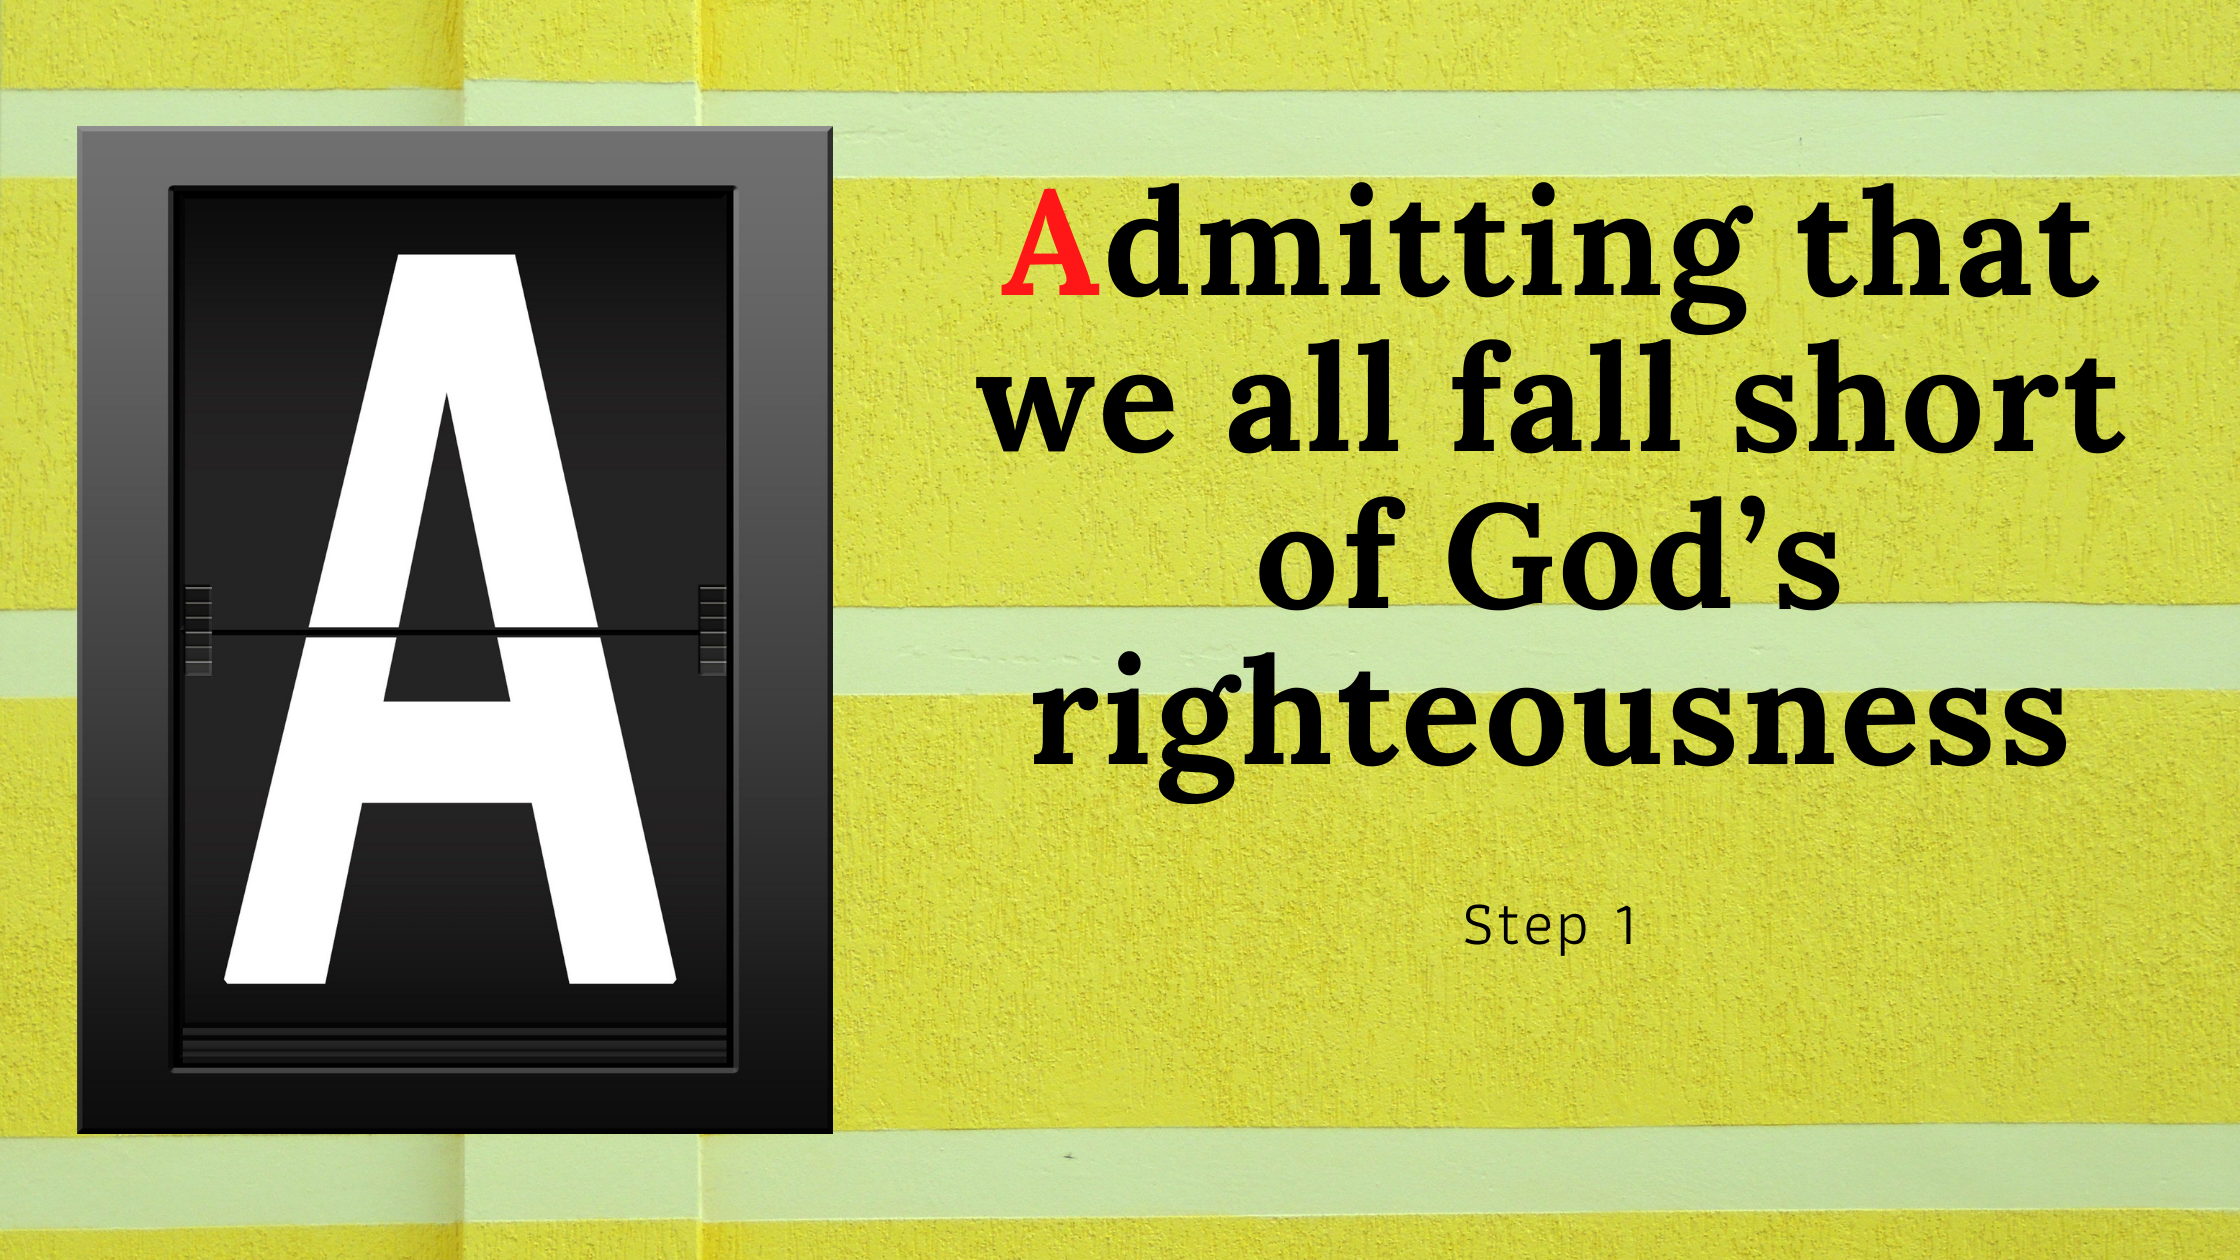 Admitting that we all fall short of God's righteousness